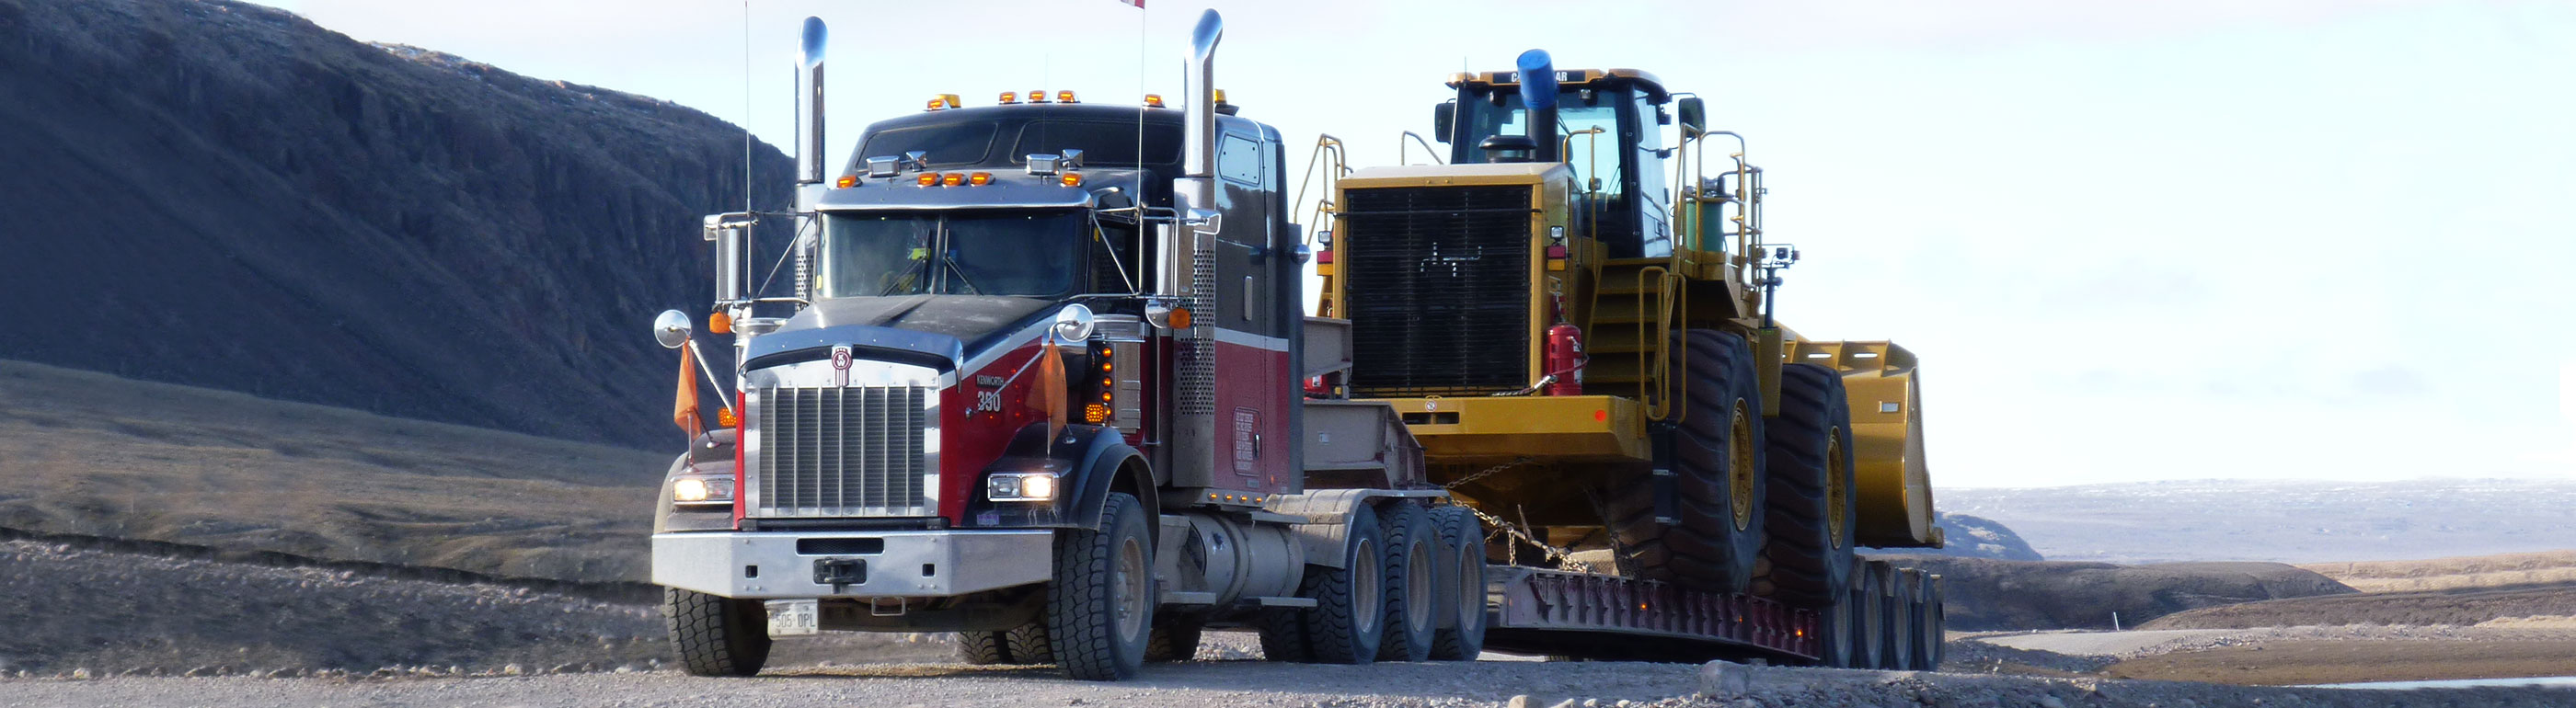 Heavy haul truck transporting construction equipment